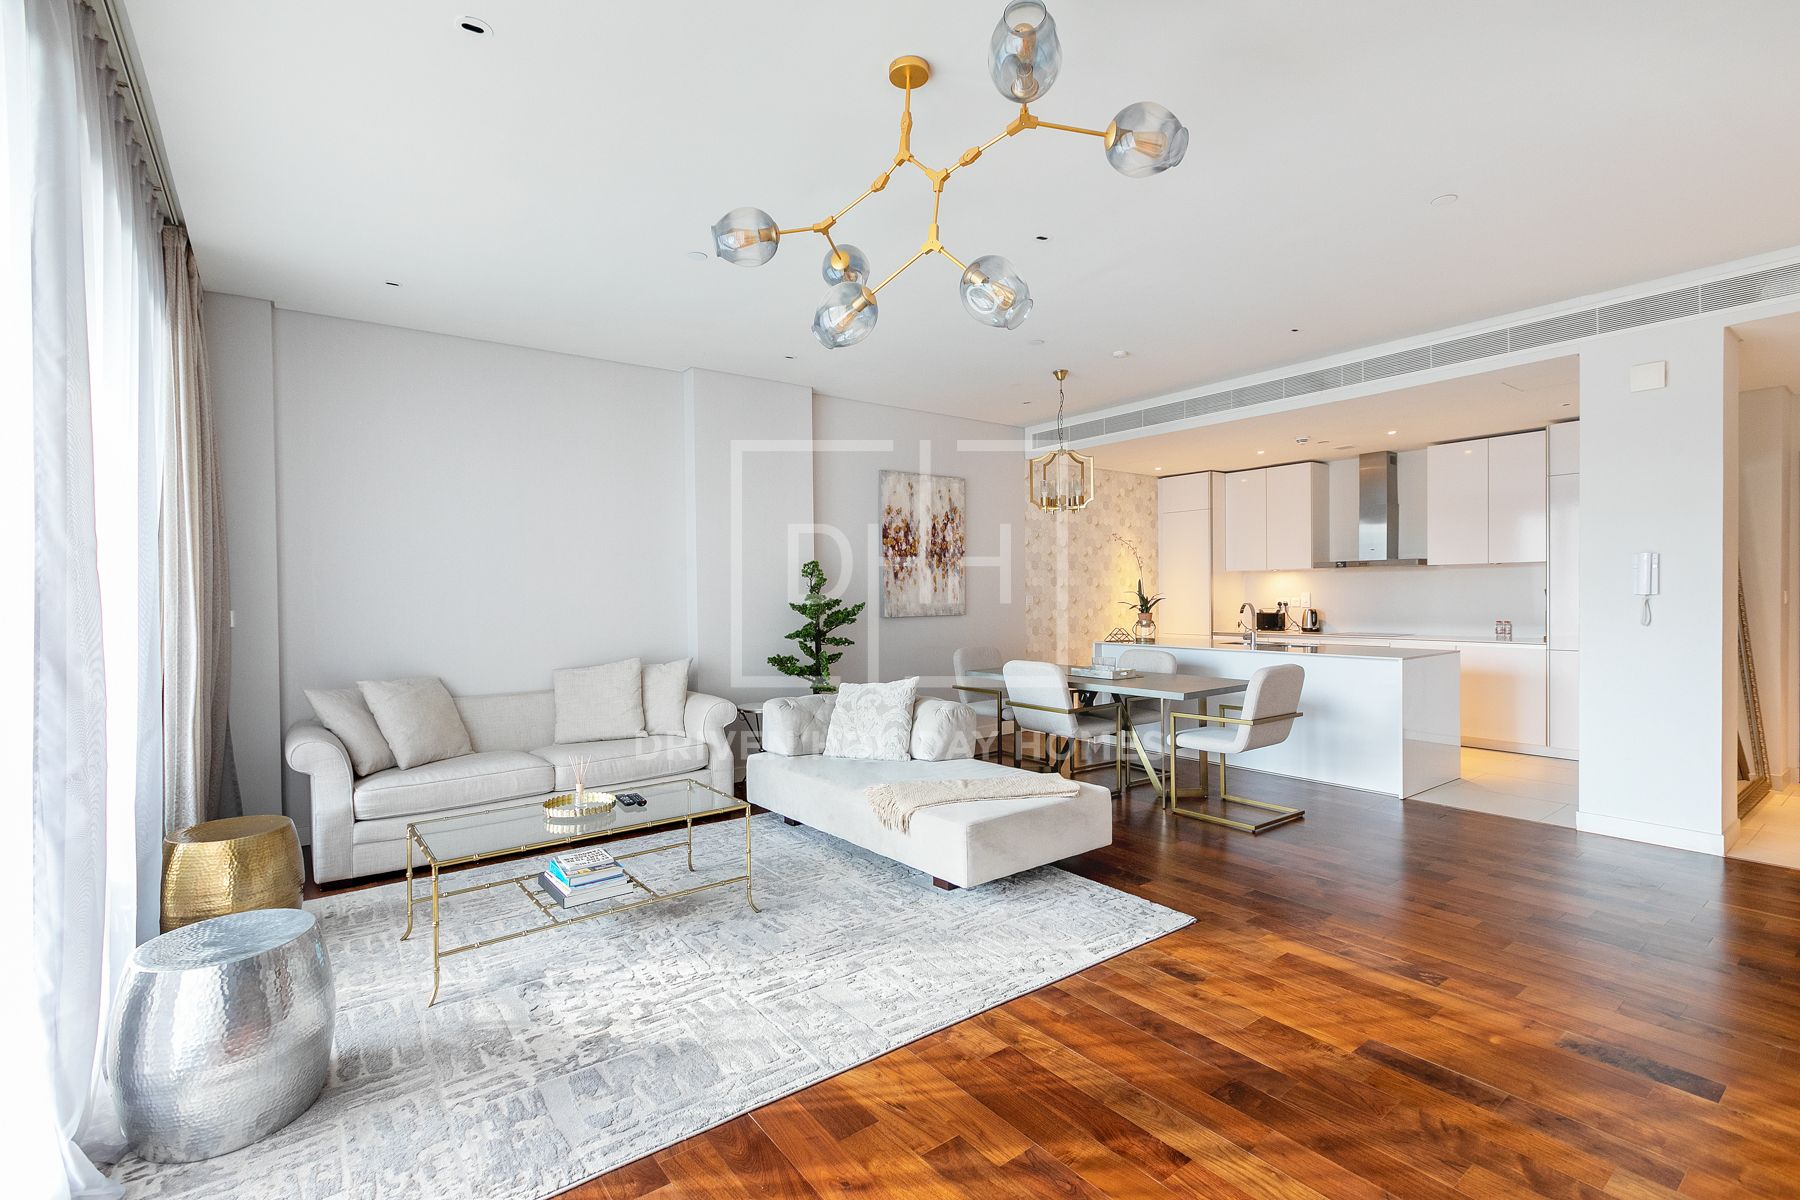 Avail This Excellent 1 Bed in City Walk 12